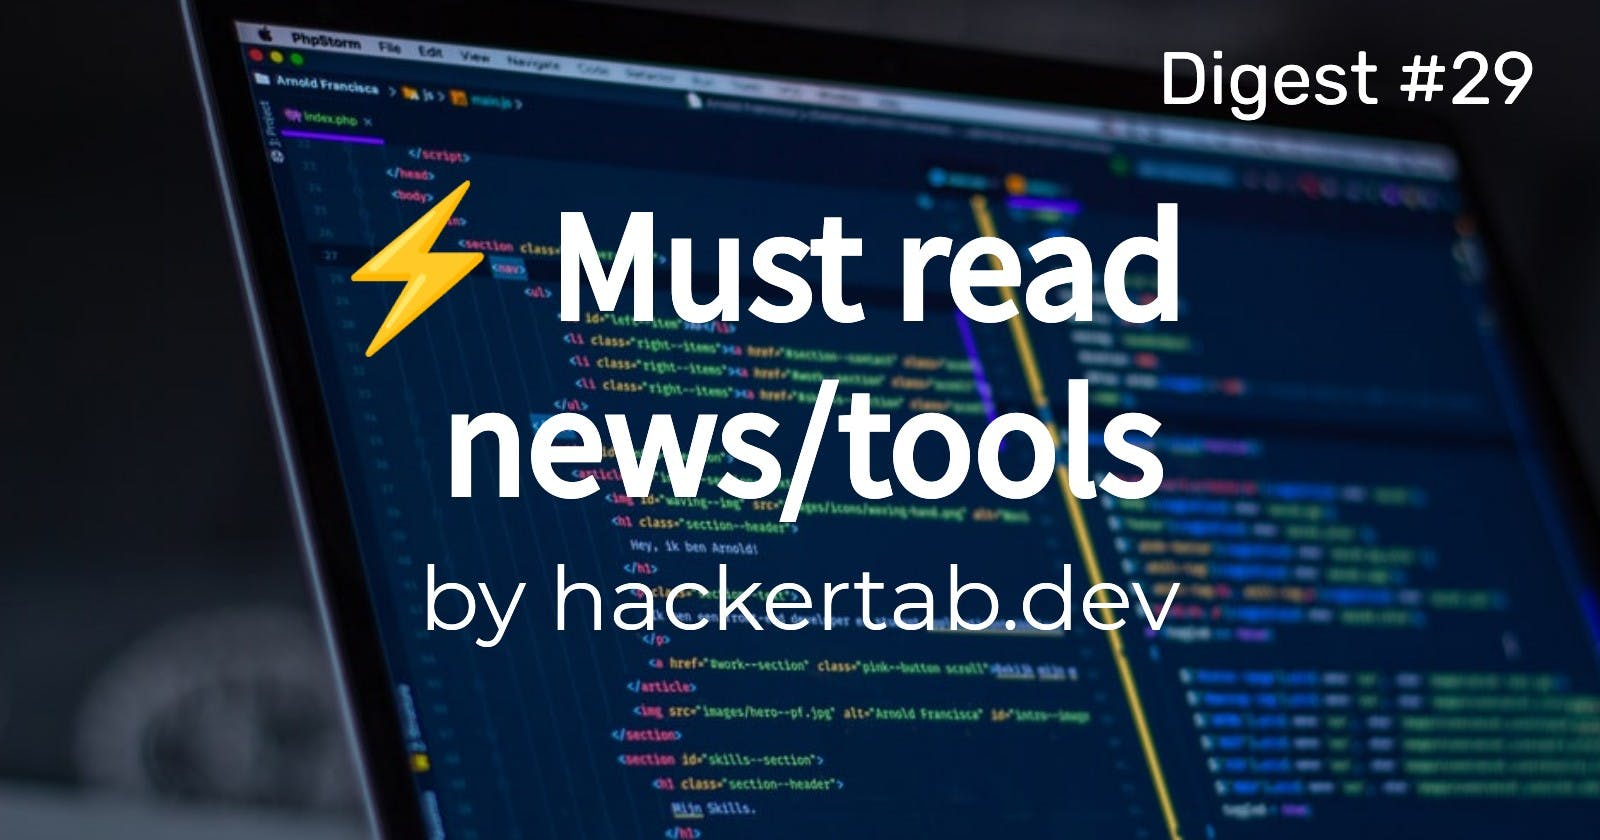 🔥 Trending News, Repos and Products of the day - Digest #29